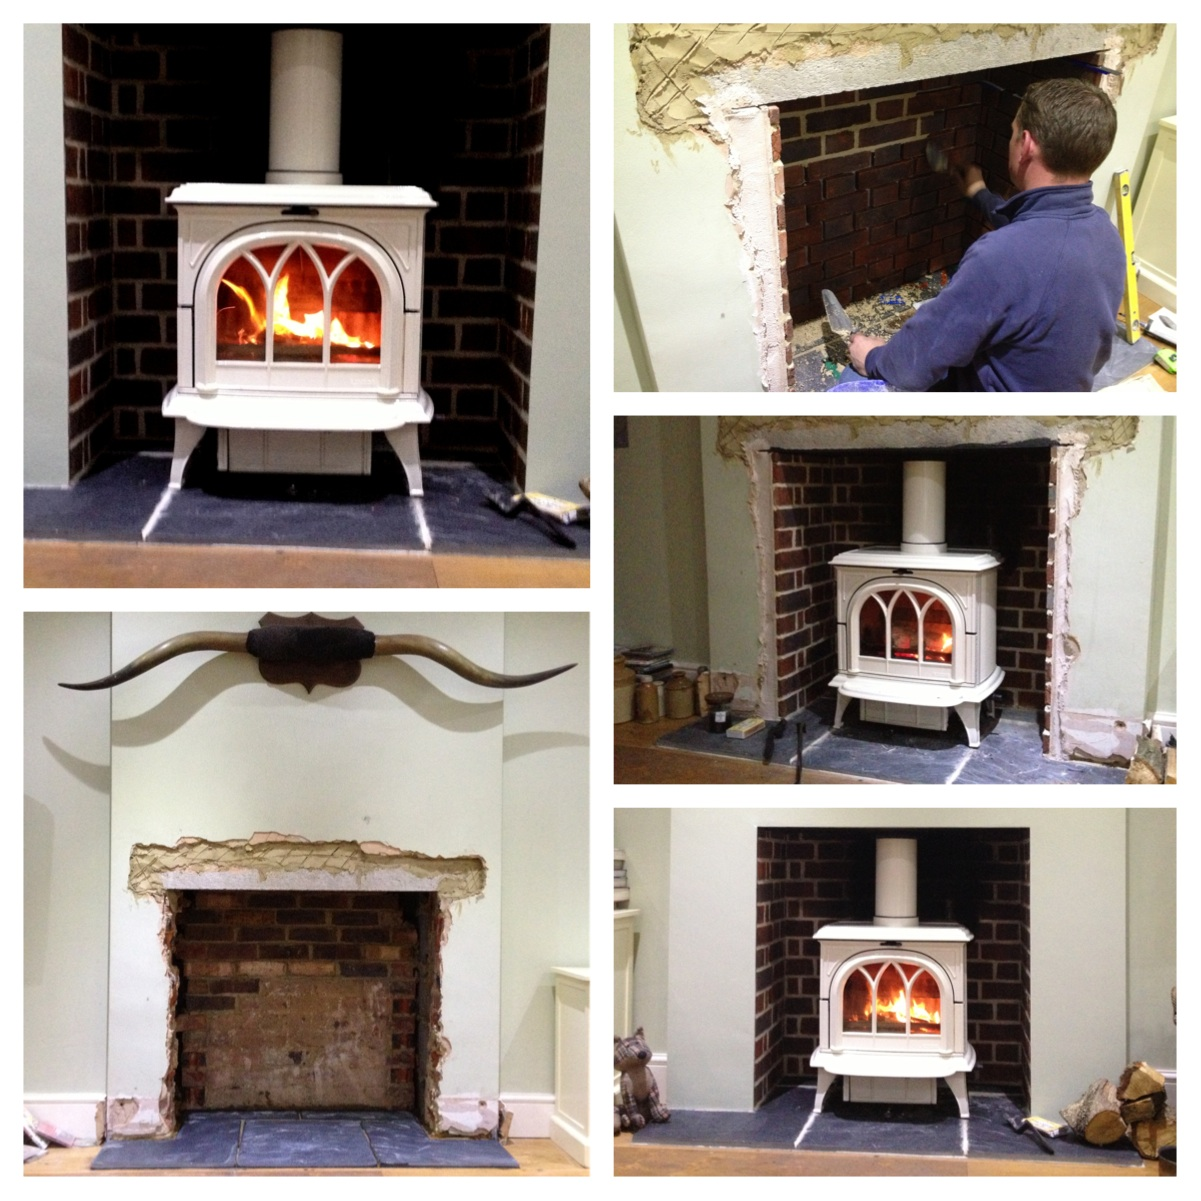 Kitchen Stove Installation Guide: Examples Of Our Work - FireCrest